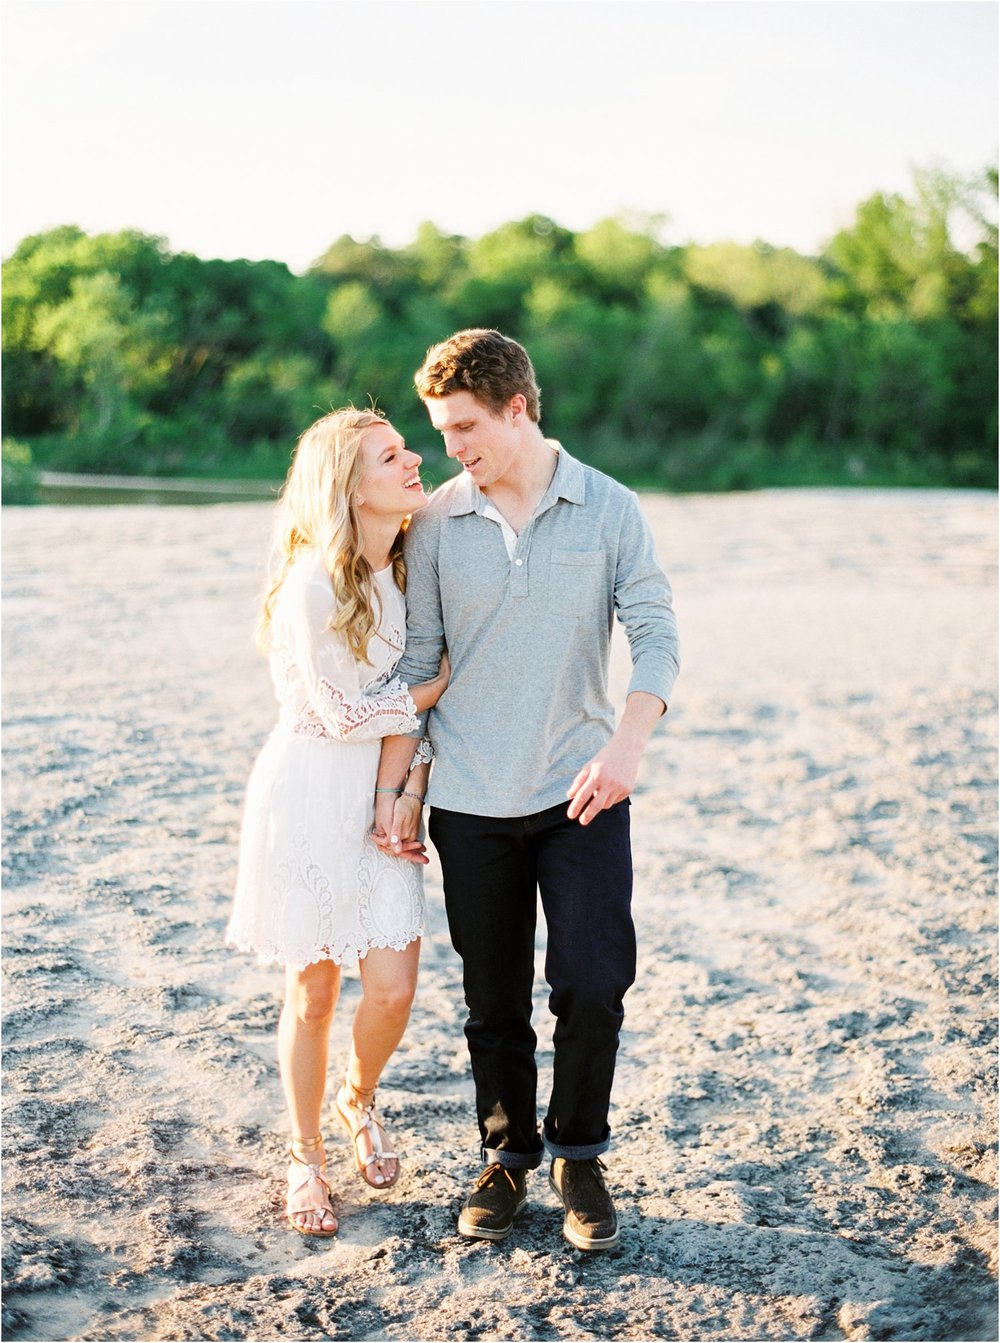 Austin Engagement Photography | Jenny + Marshall | Jessica Scott Photography